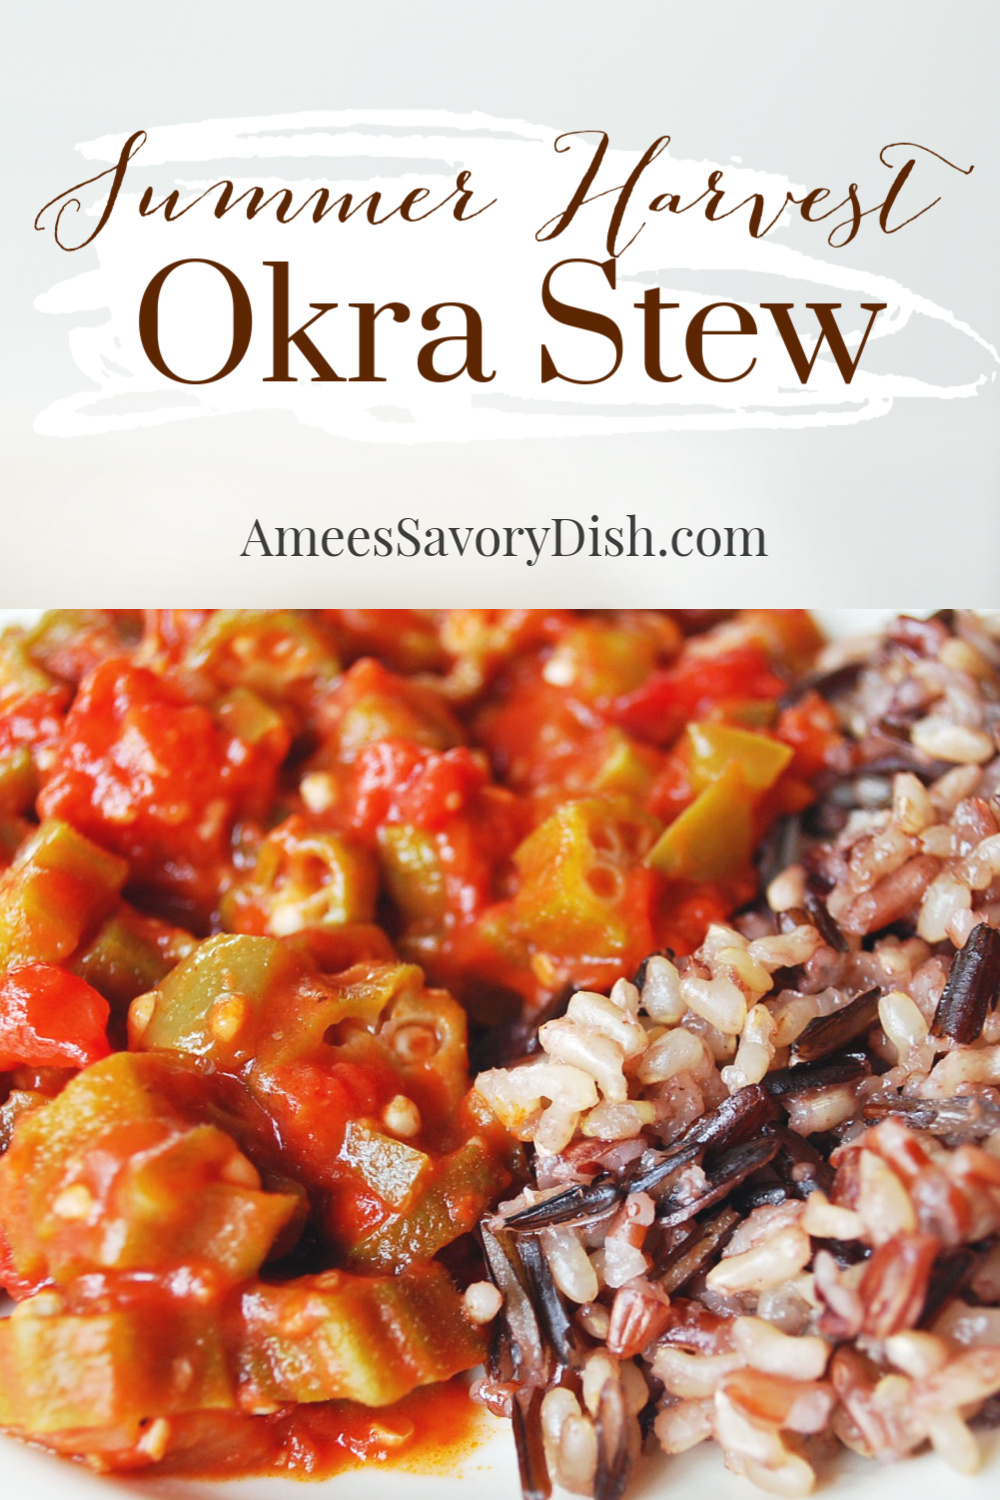 An easy summer okra stew recipe made with fresh okra, tomatoes, green beans, zucchini, olive oil, garlic, and onions.  It's the best of summer's harvest in a bowl. #okra #okrastew #okrarecipe via @Ameessavorydish